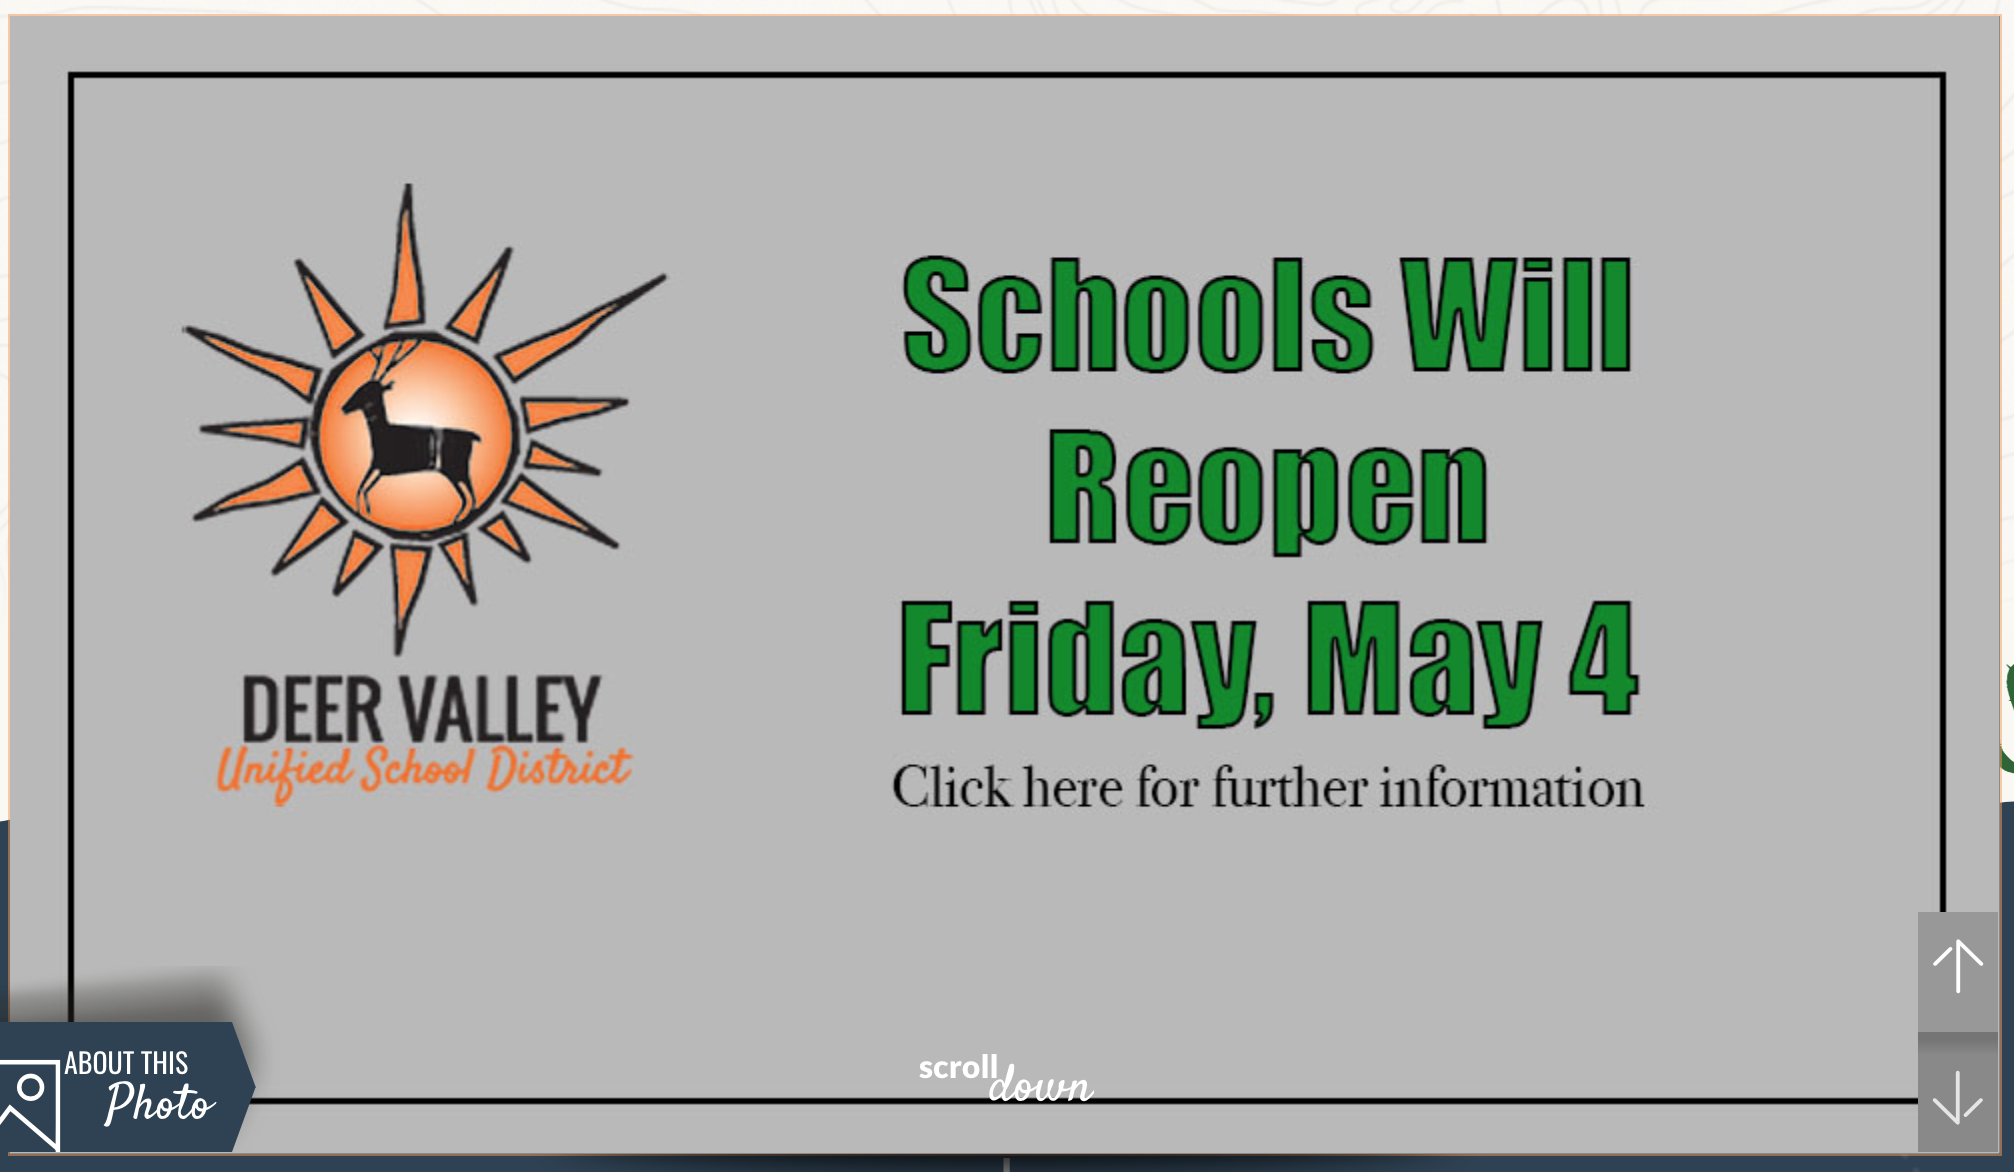 Dvusd Schools Reopen Friday, May 4 | North Phoenix News With Deer Valley Unified School District Calendar